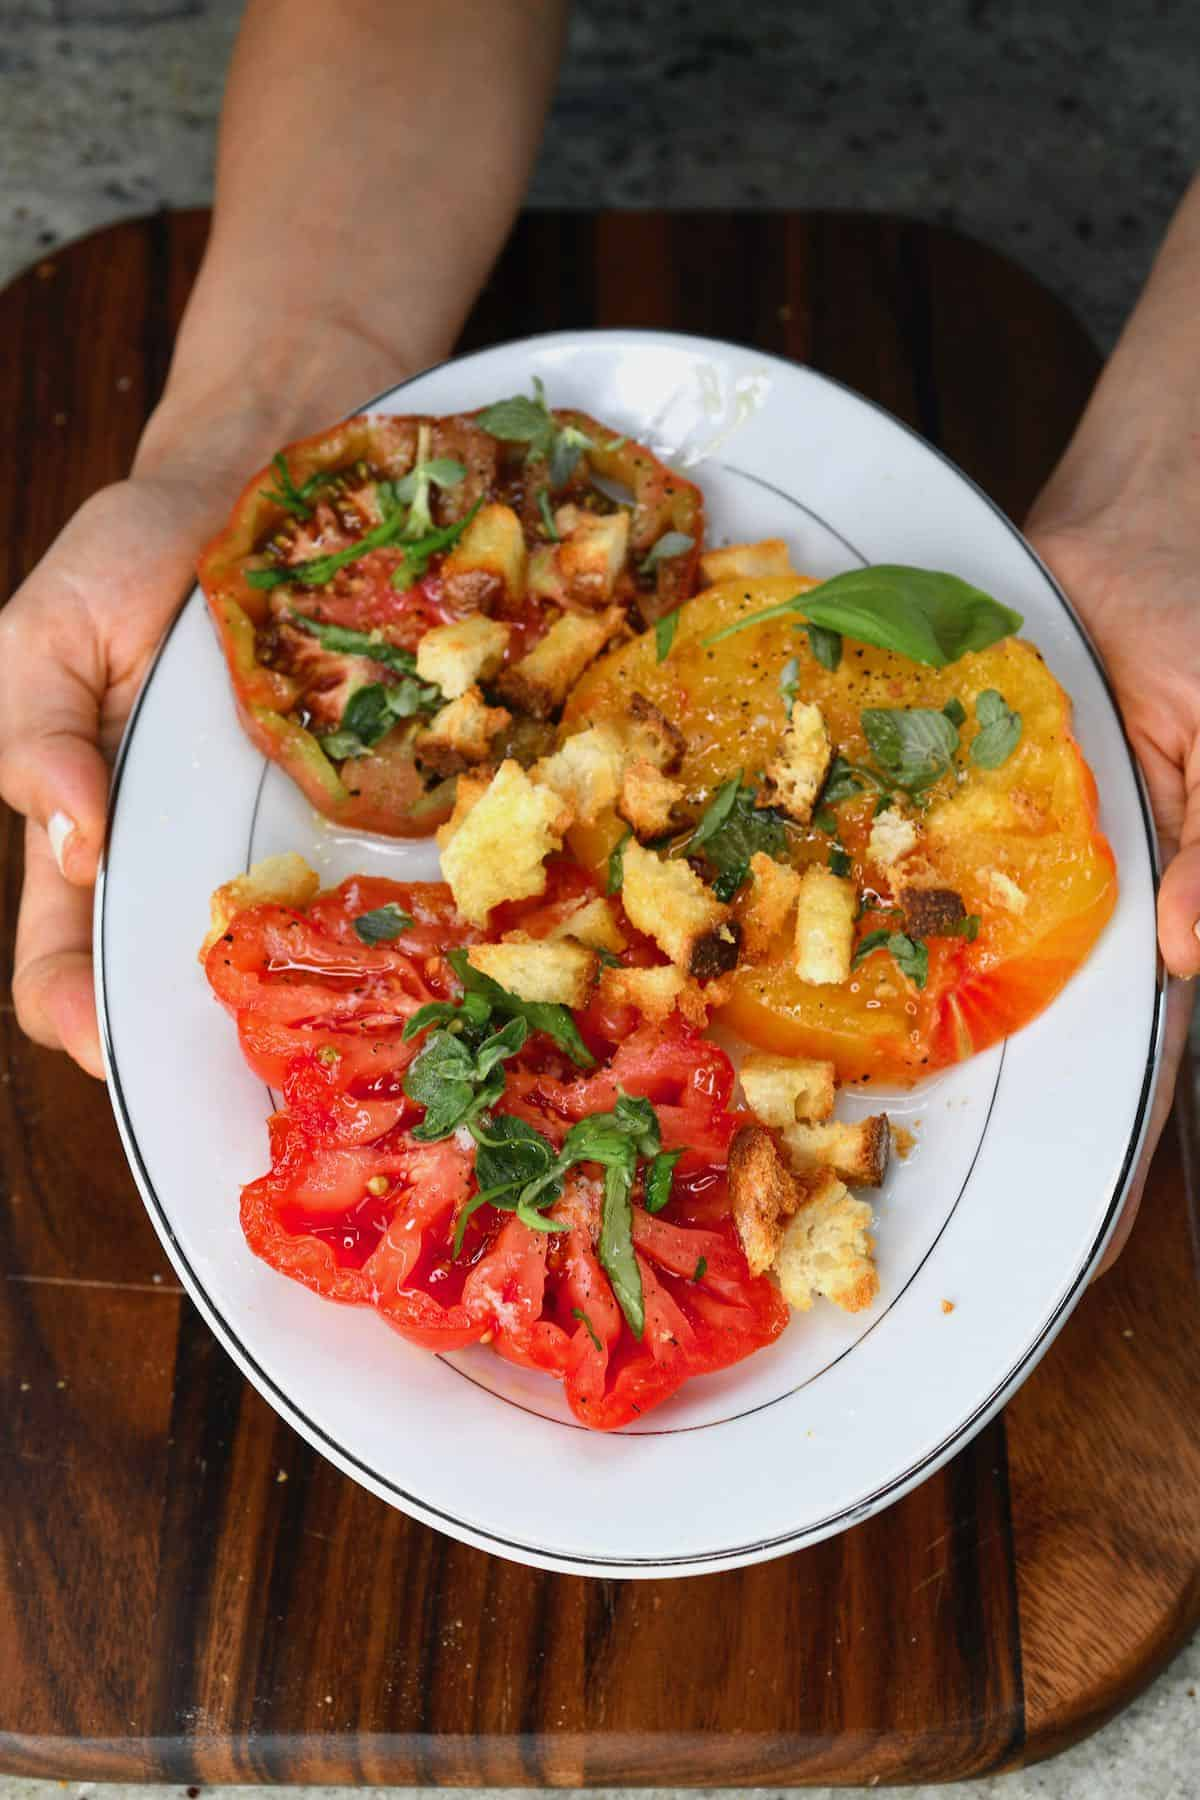 A serving of tomato salad with croutons